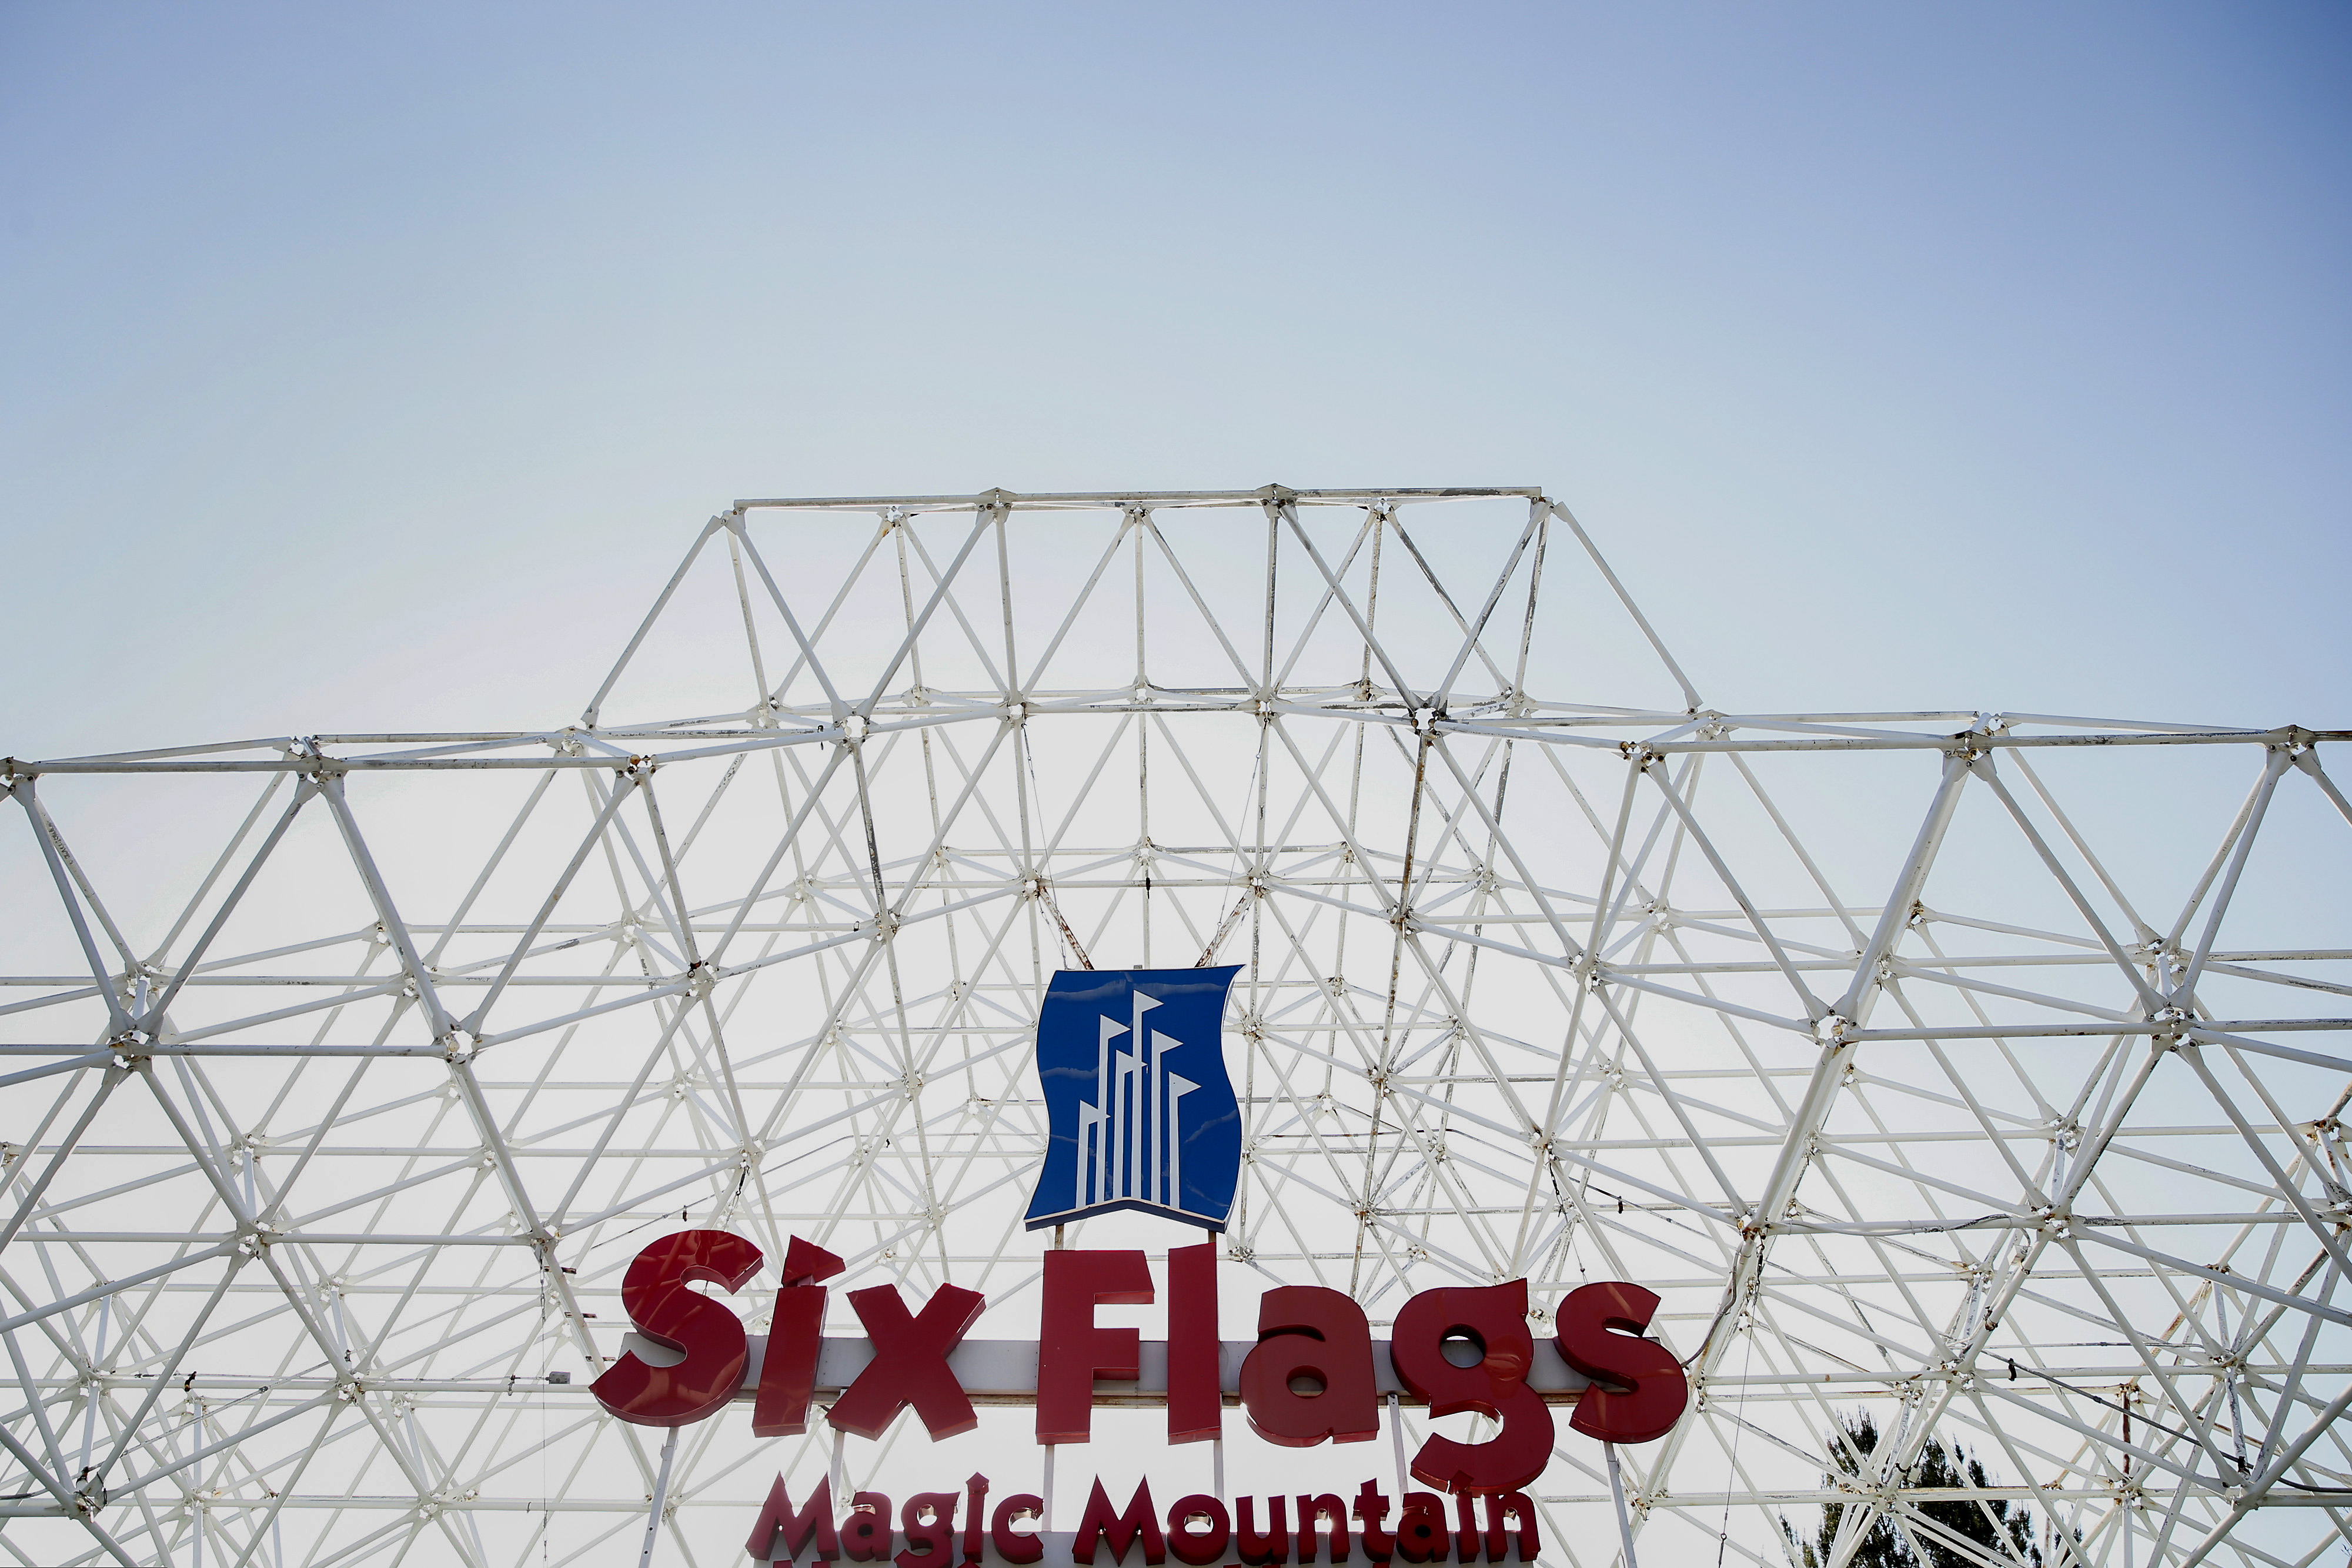 Six Flags Magic Mountain signage is displayed at the theme park in Valencia, California, U.S., on Monday, April 20, 2015.